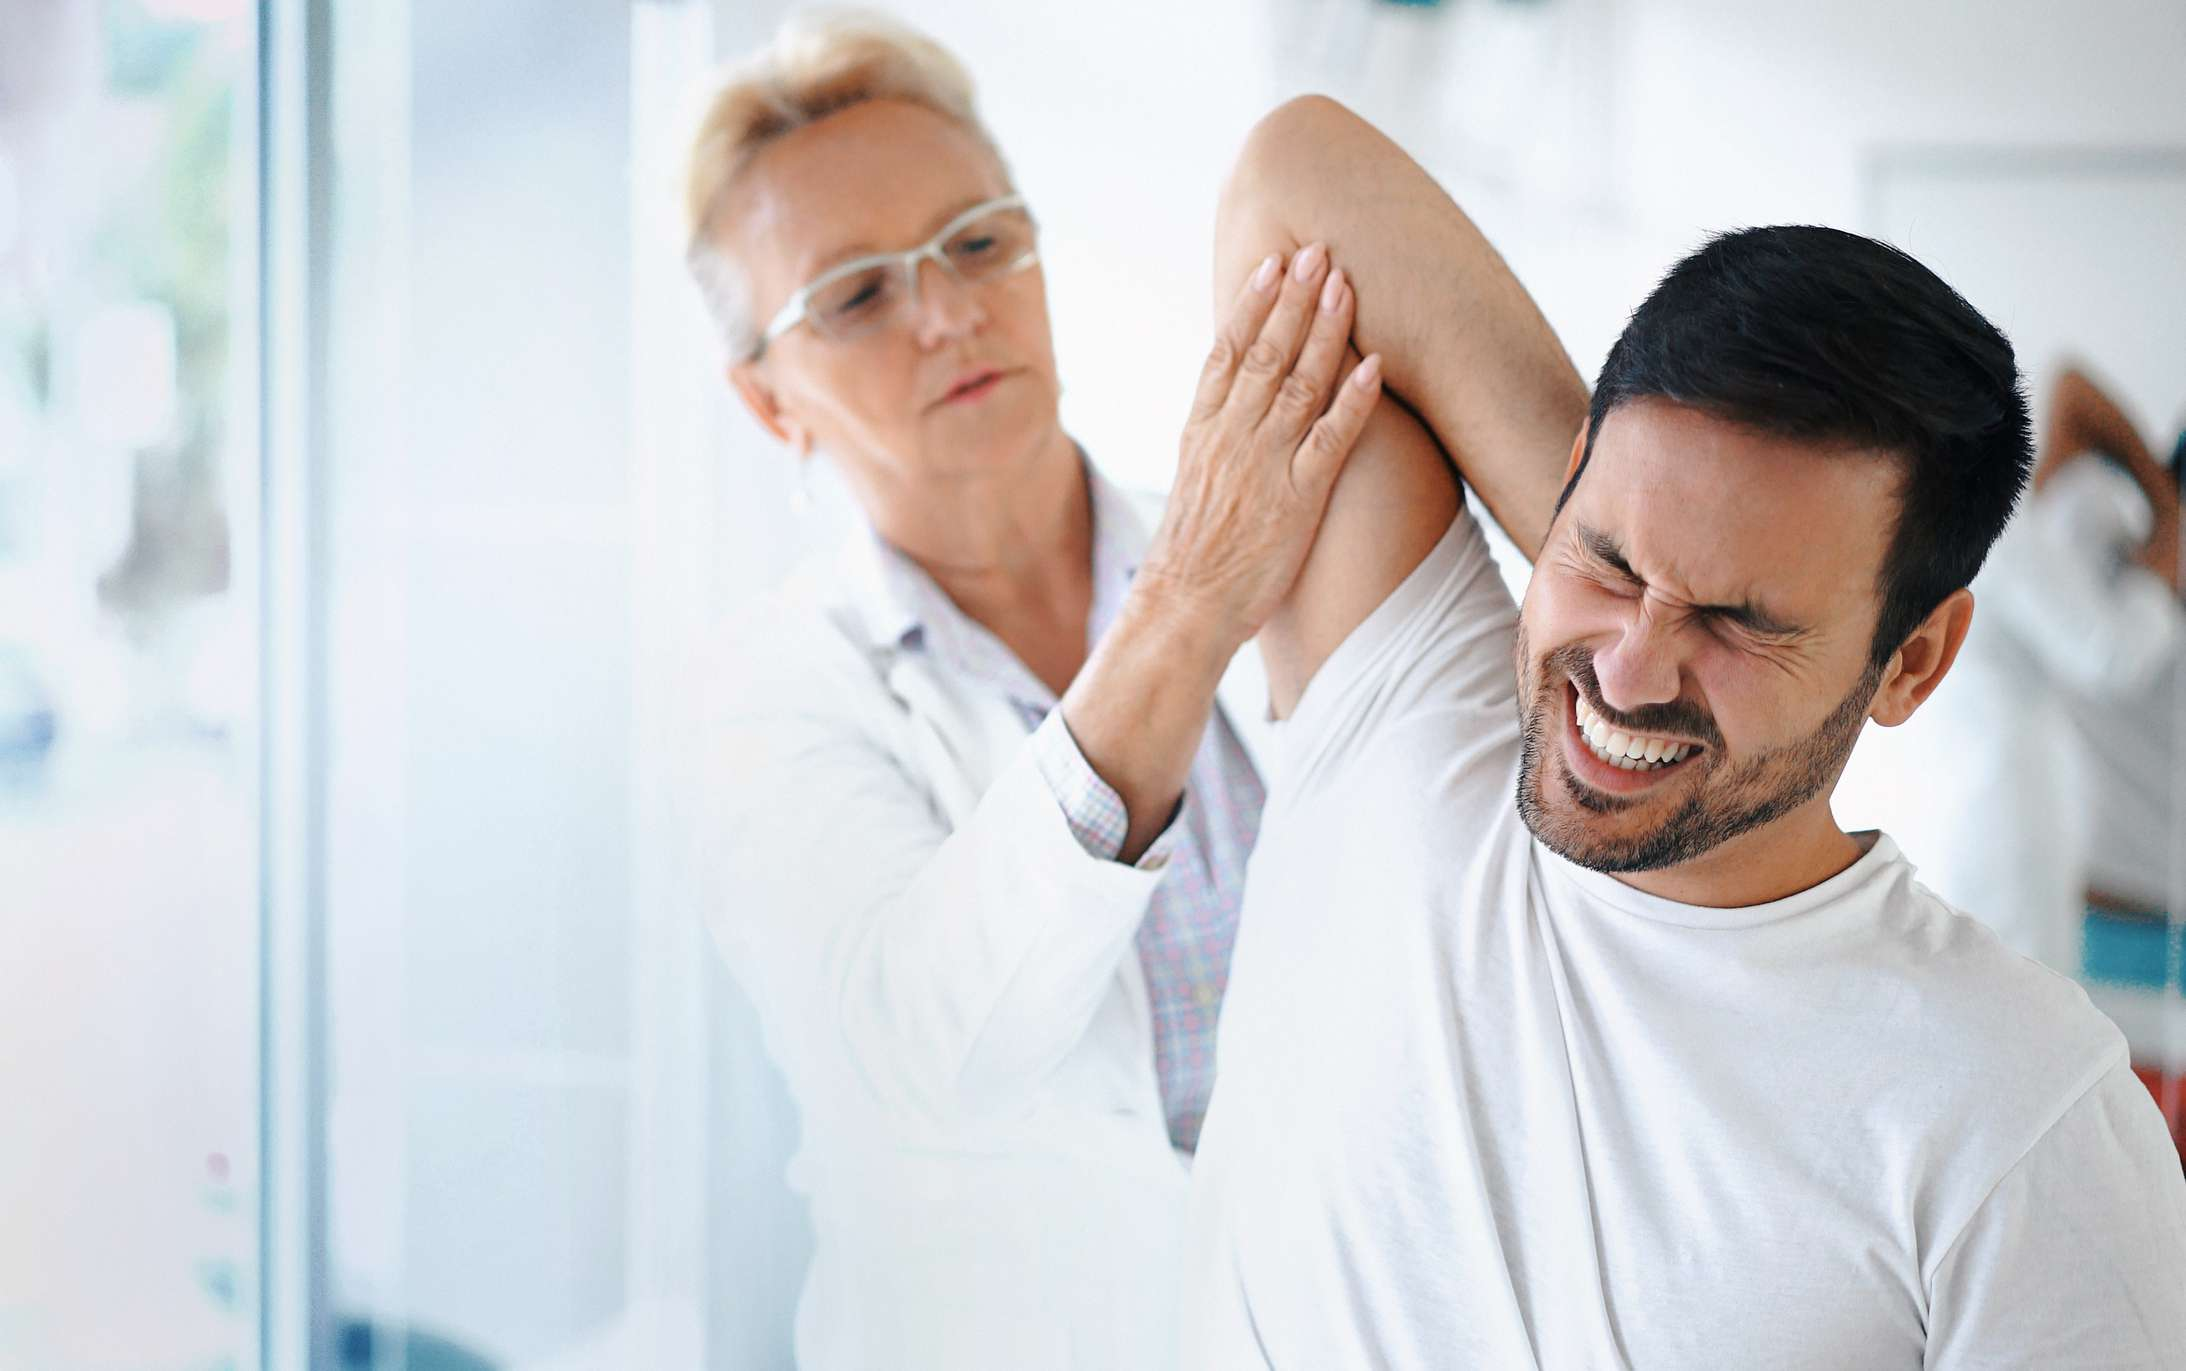 Woman examining a man's shoulder as he grimaces in pain